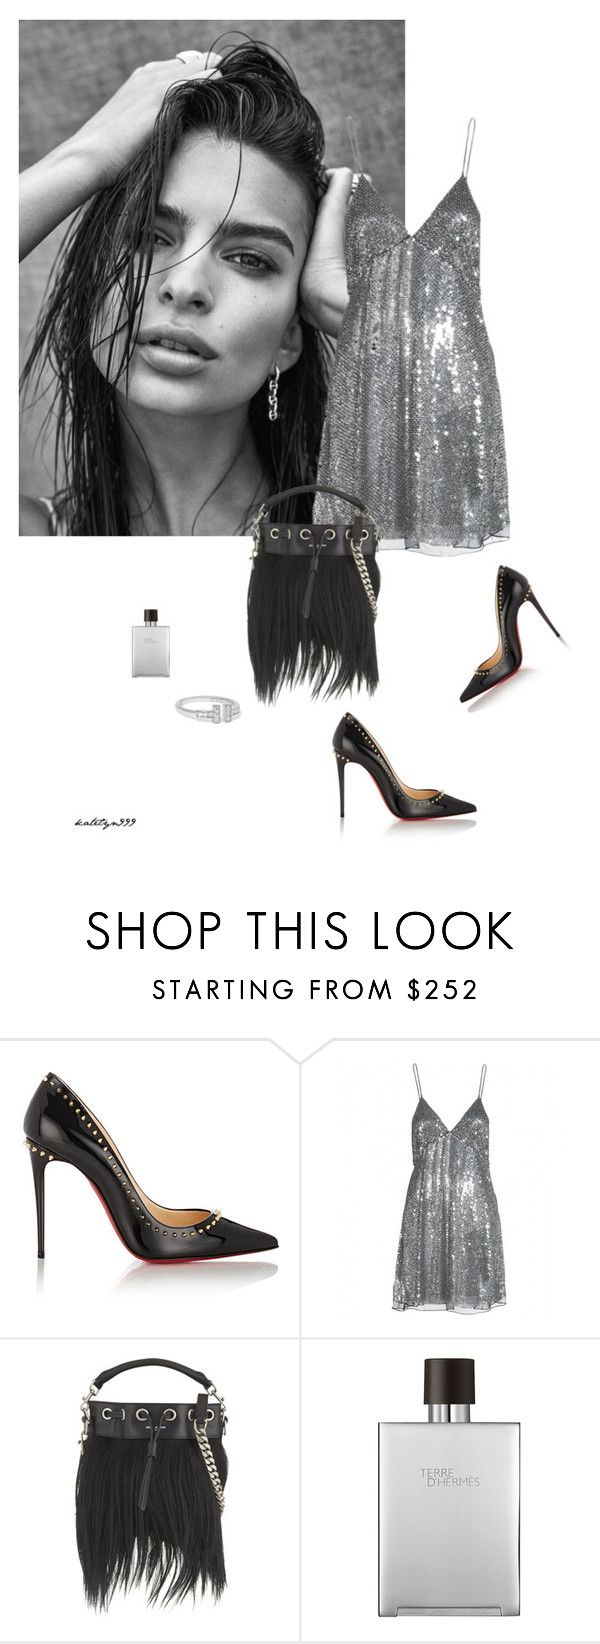 """Party girl..."" by katelyn999 ❤ liked on Polyvore featuring Christian Louboutin, Yves Saint Laurent, Tiffany & Co. and Hermès"